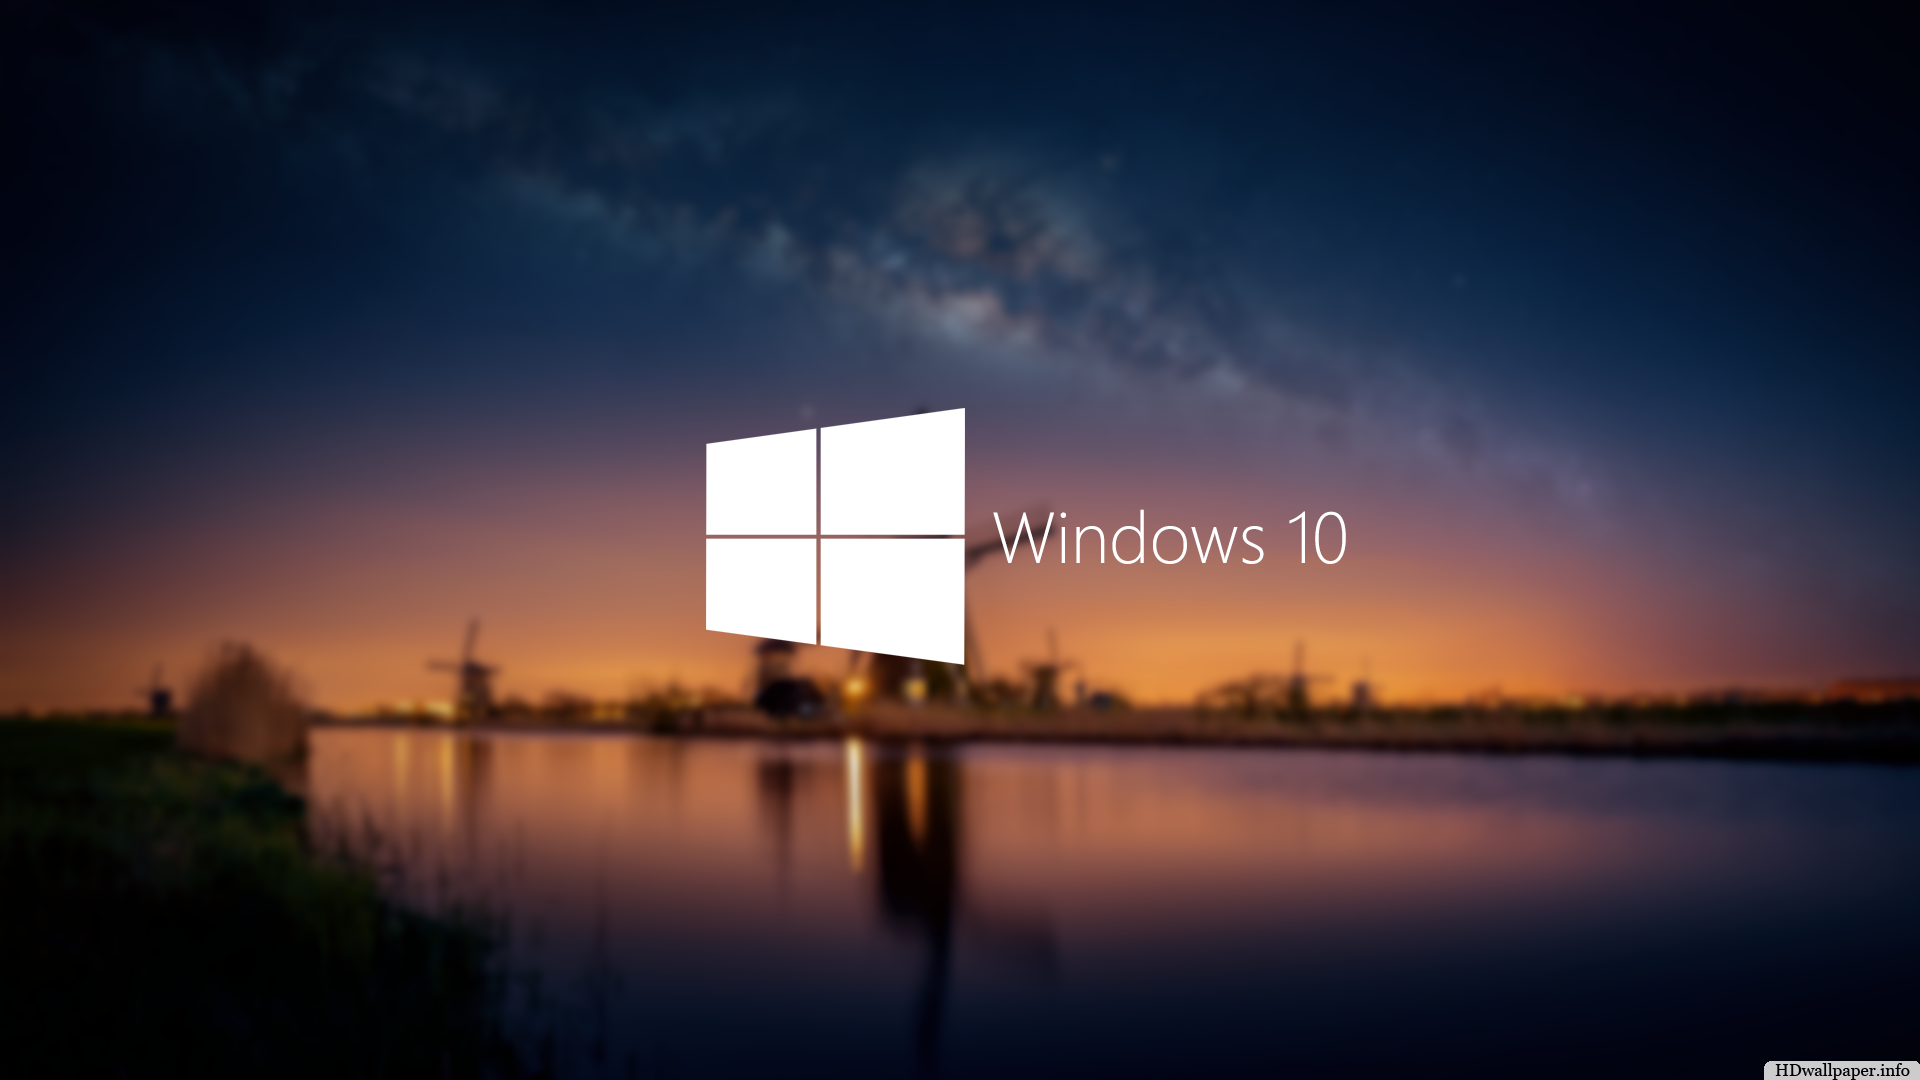 Hd wallpaper for windows 10 - Wallpaper Windows 10 Http Hdwallpaper Info Wallpaper Windows